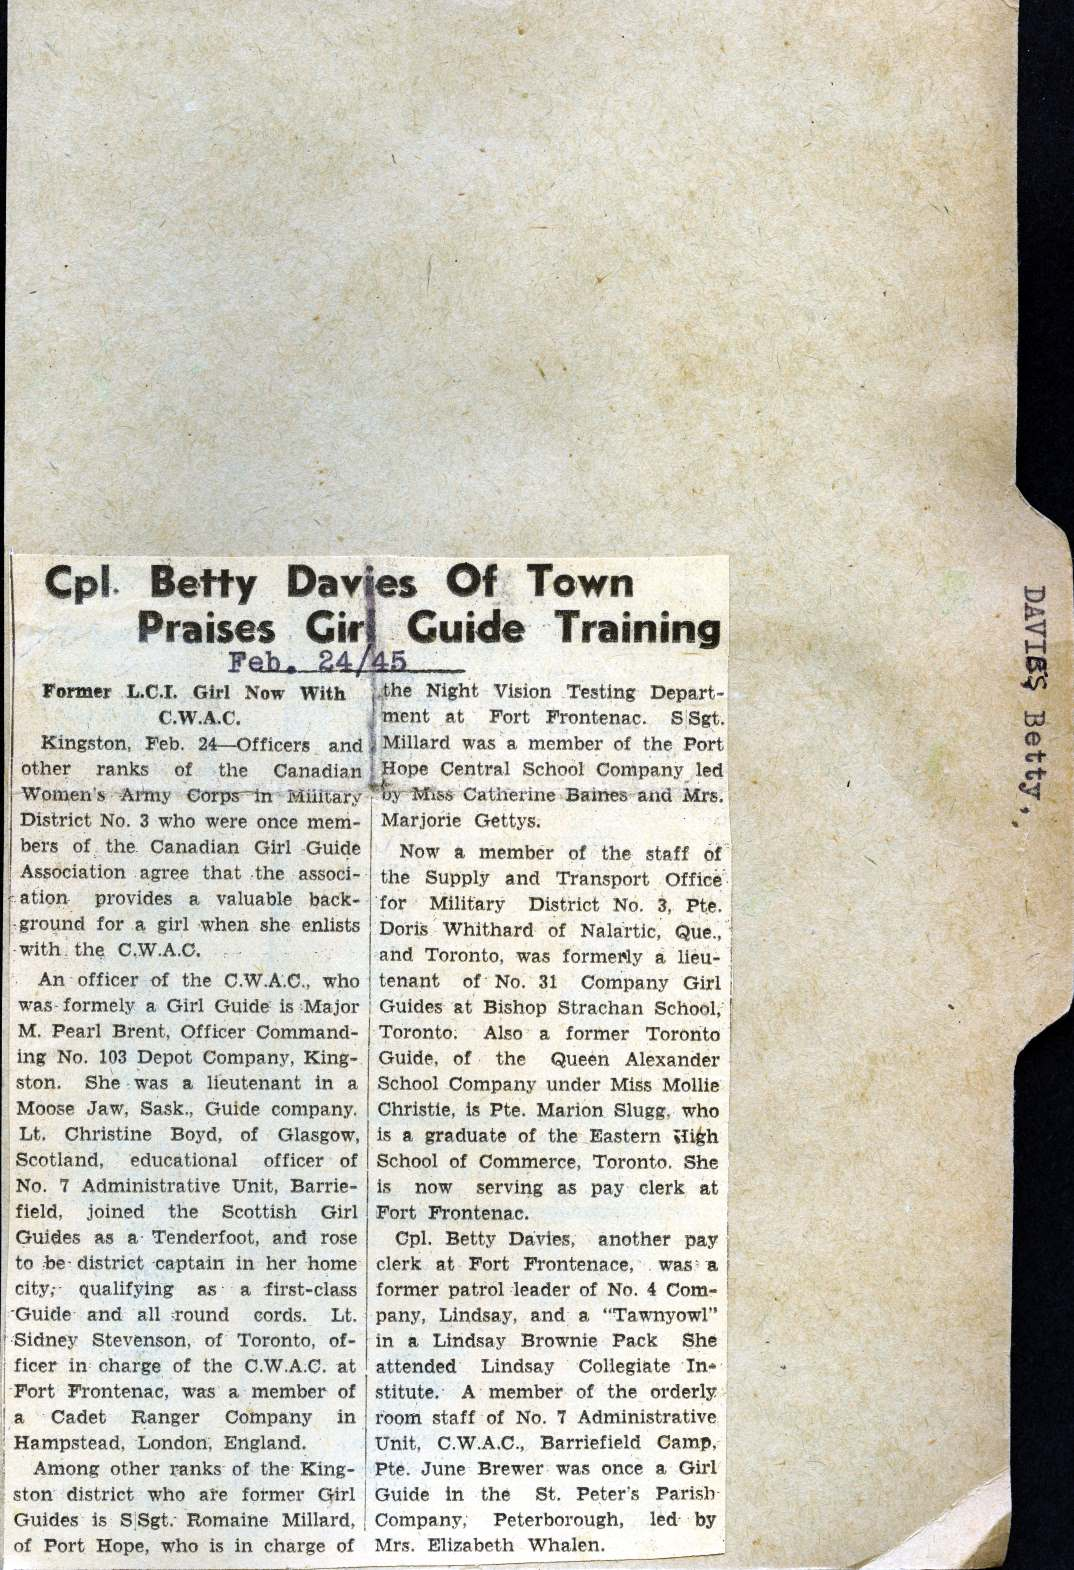 """Cpl. Betty Davis of Town Praises Girl Guide Training."" Courtesy the Kawartha Lakes Public Library."